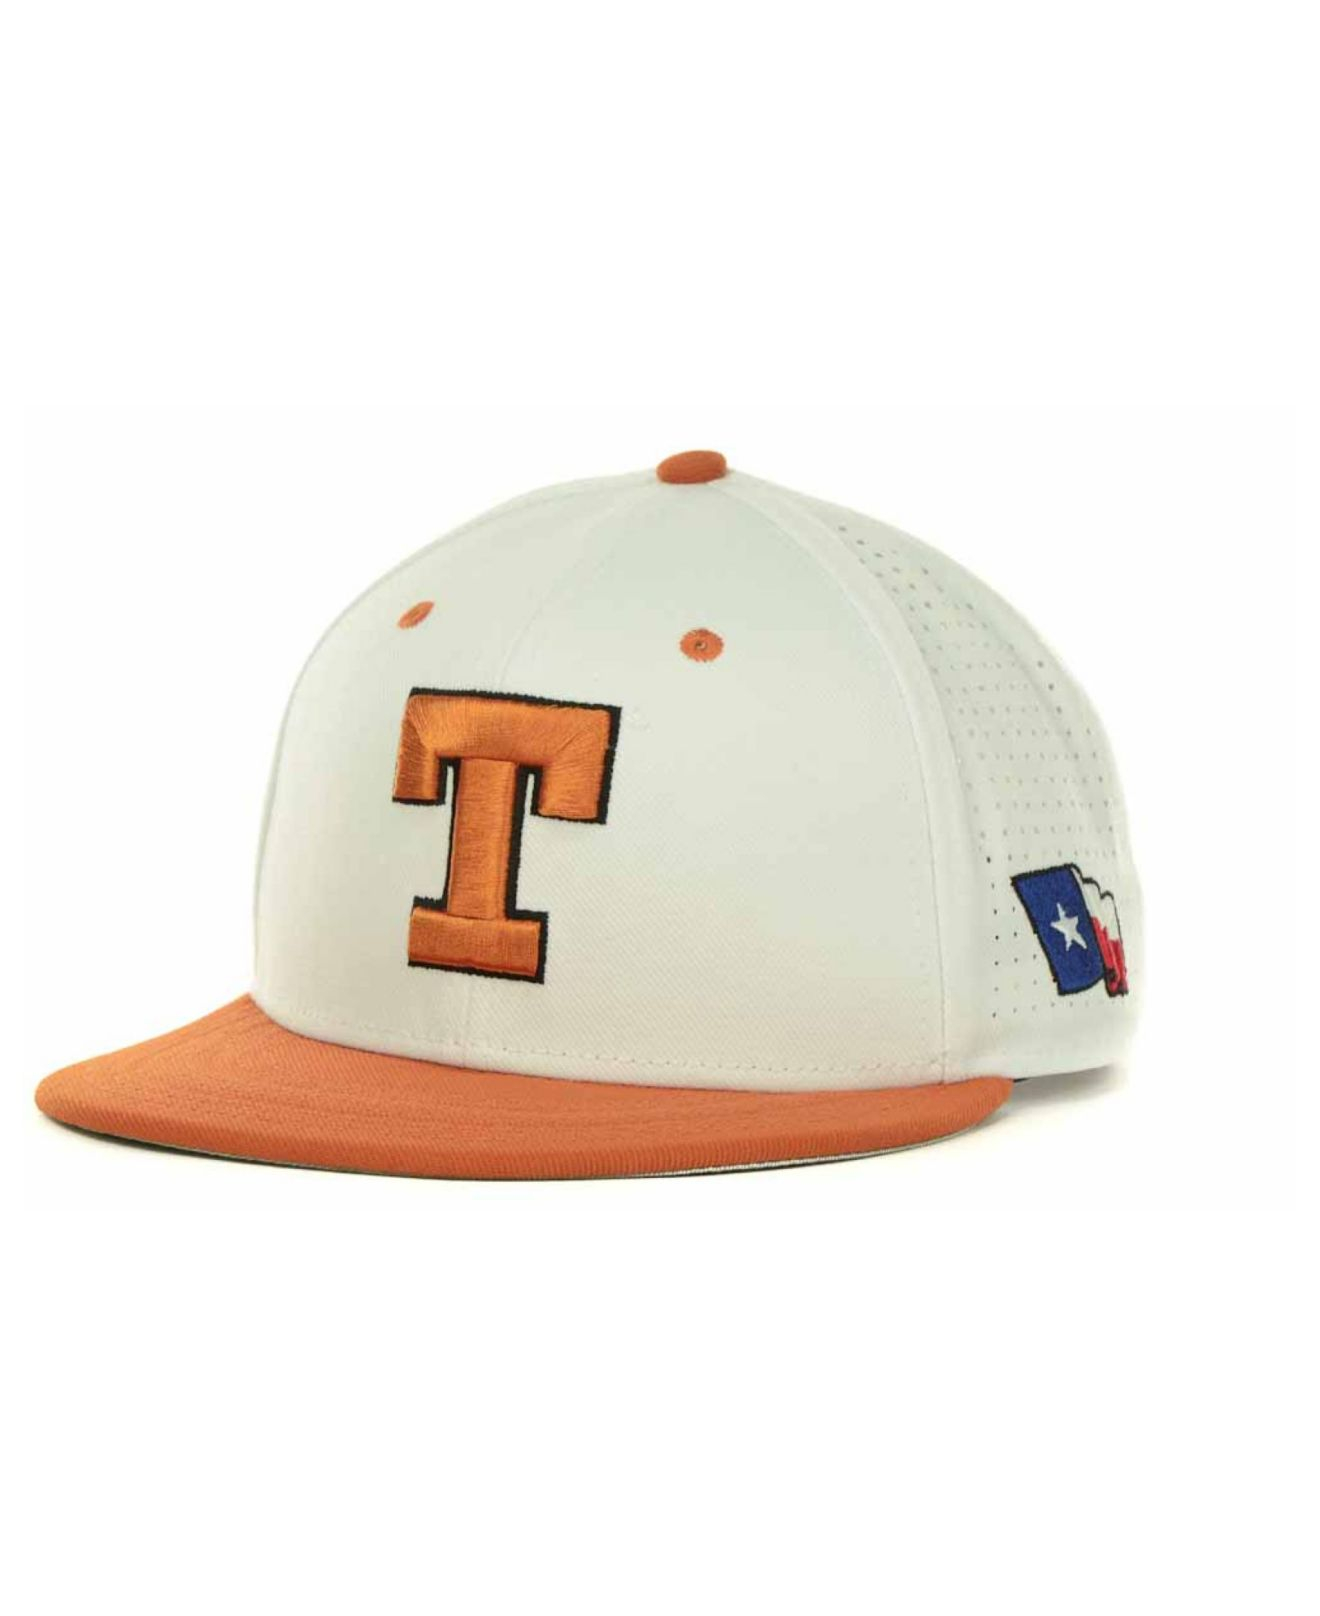 5346f7db55975 ... new arrivals lyst nike texas longhorns ncaa authentic vapor fitted cap  in white cbd32 65b61